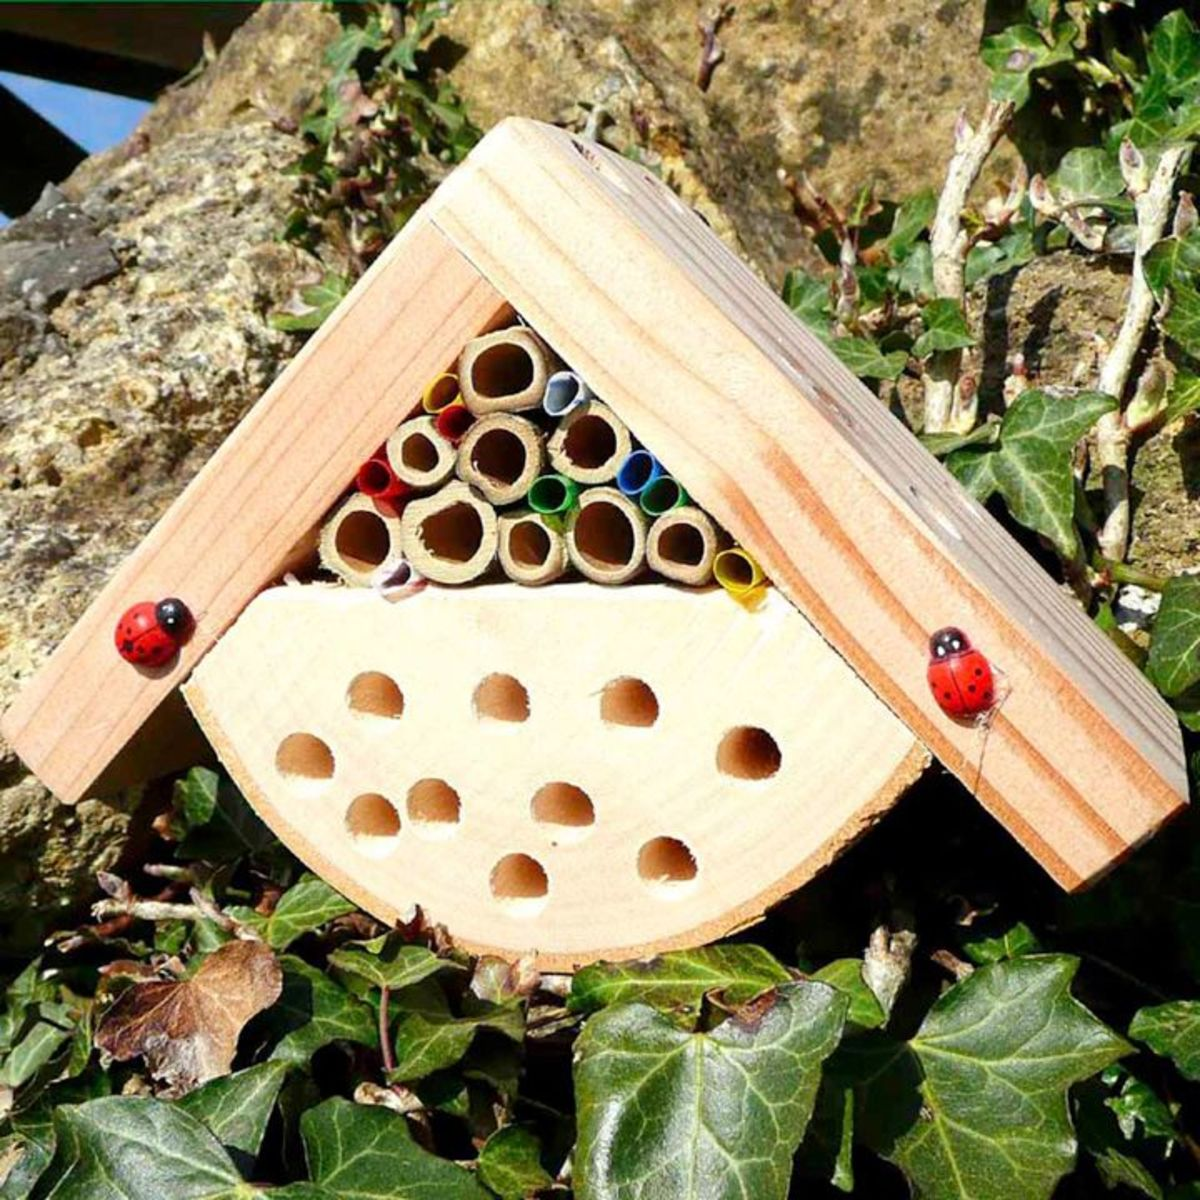 Encourage your kids to create a cute and functional habitat for ladybugs, bees, and other beneficial insects: